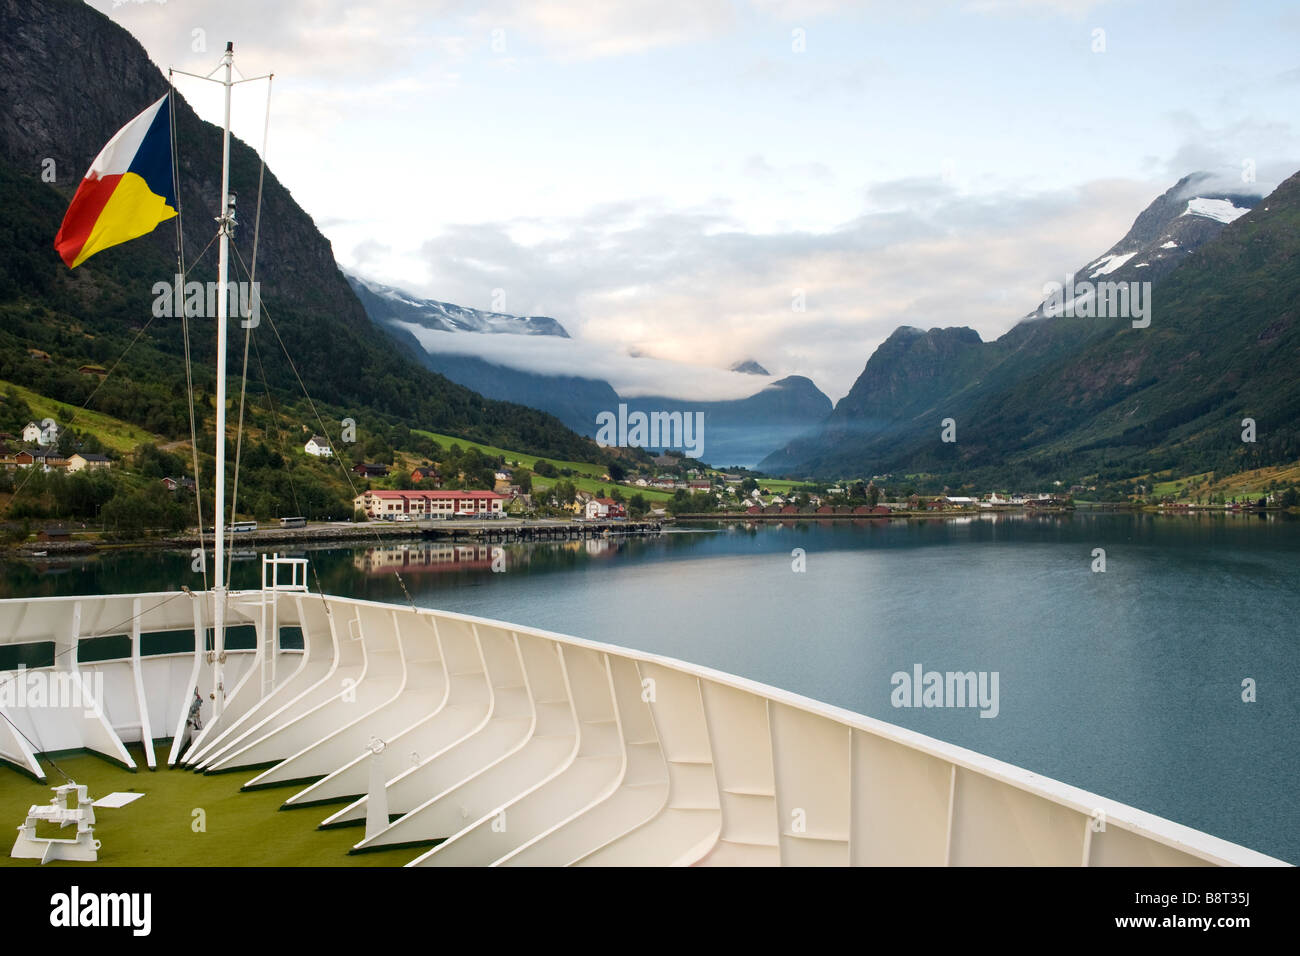 P&O cruise ship Artemis approaching Olden, Norway - Stock Image